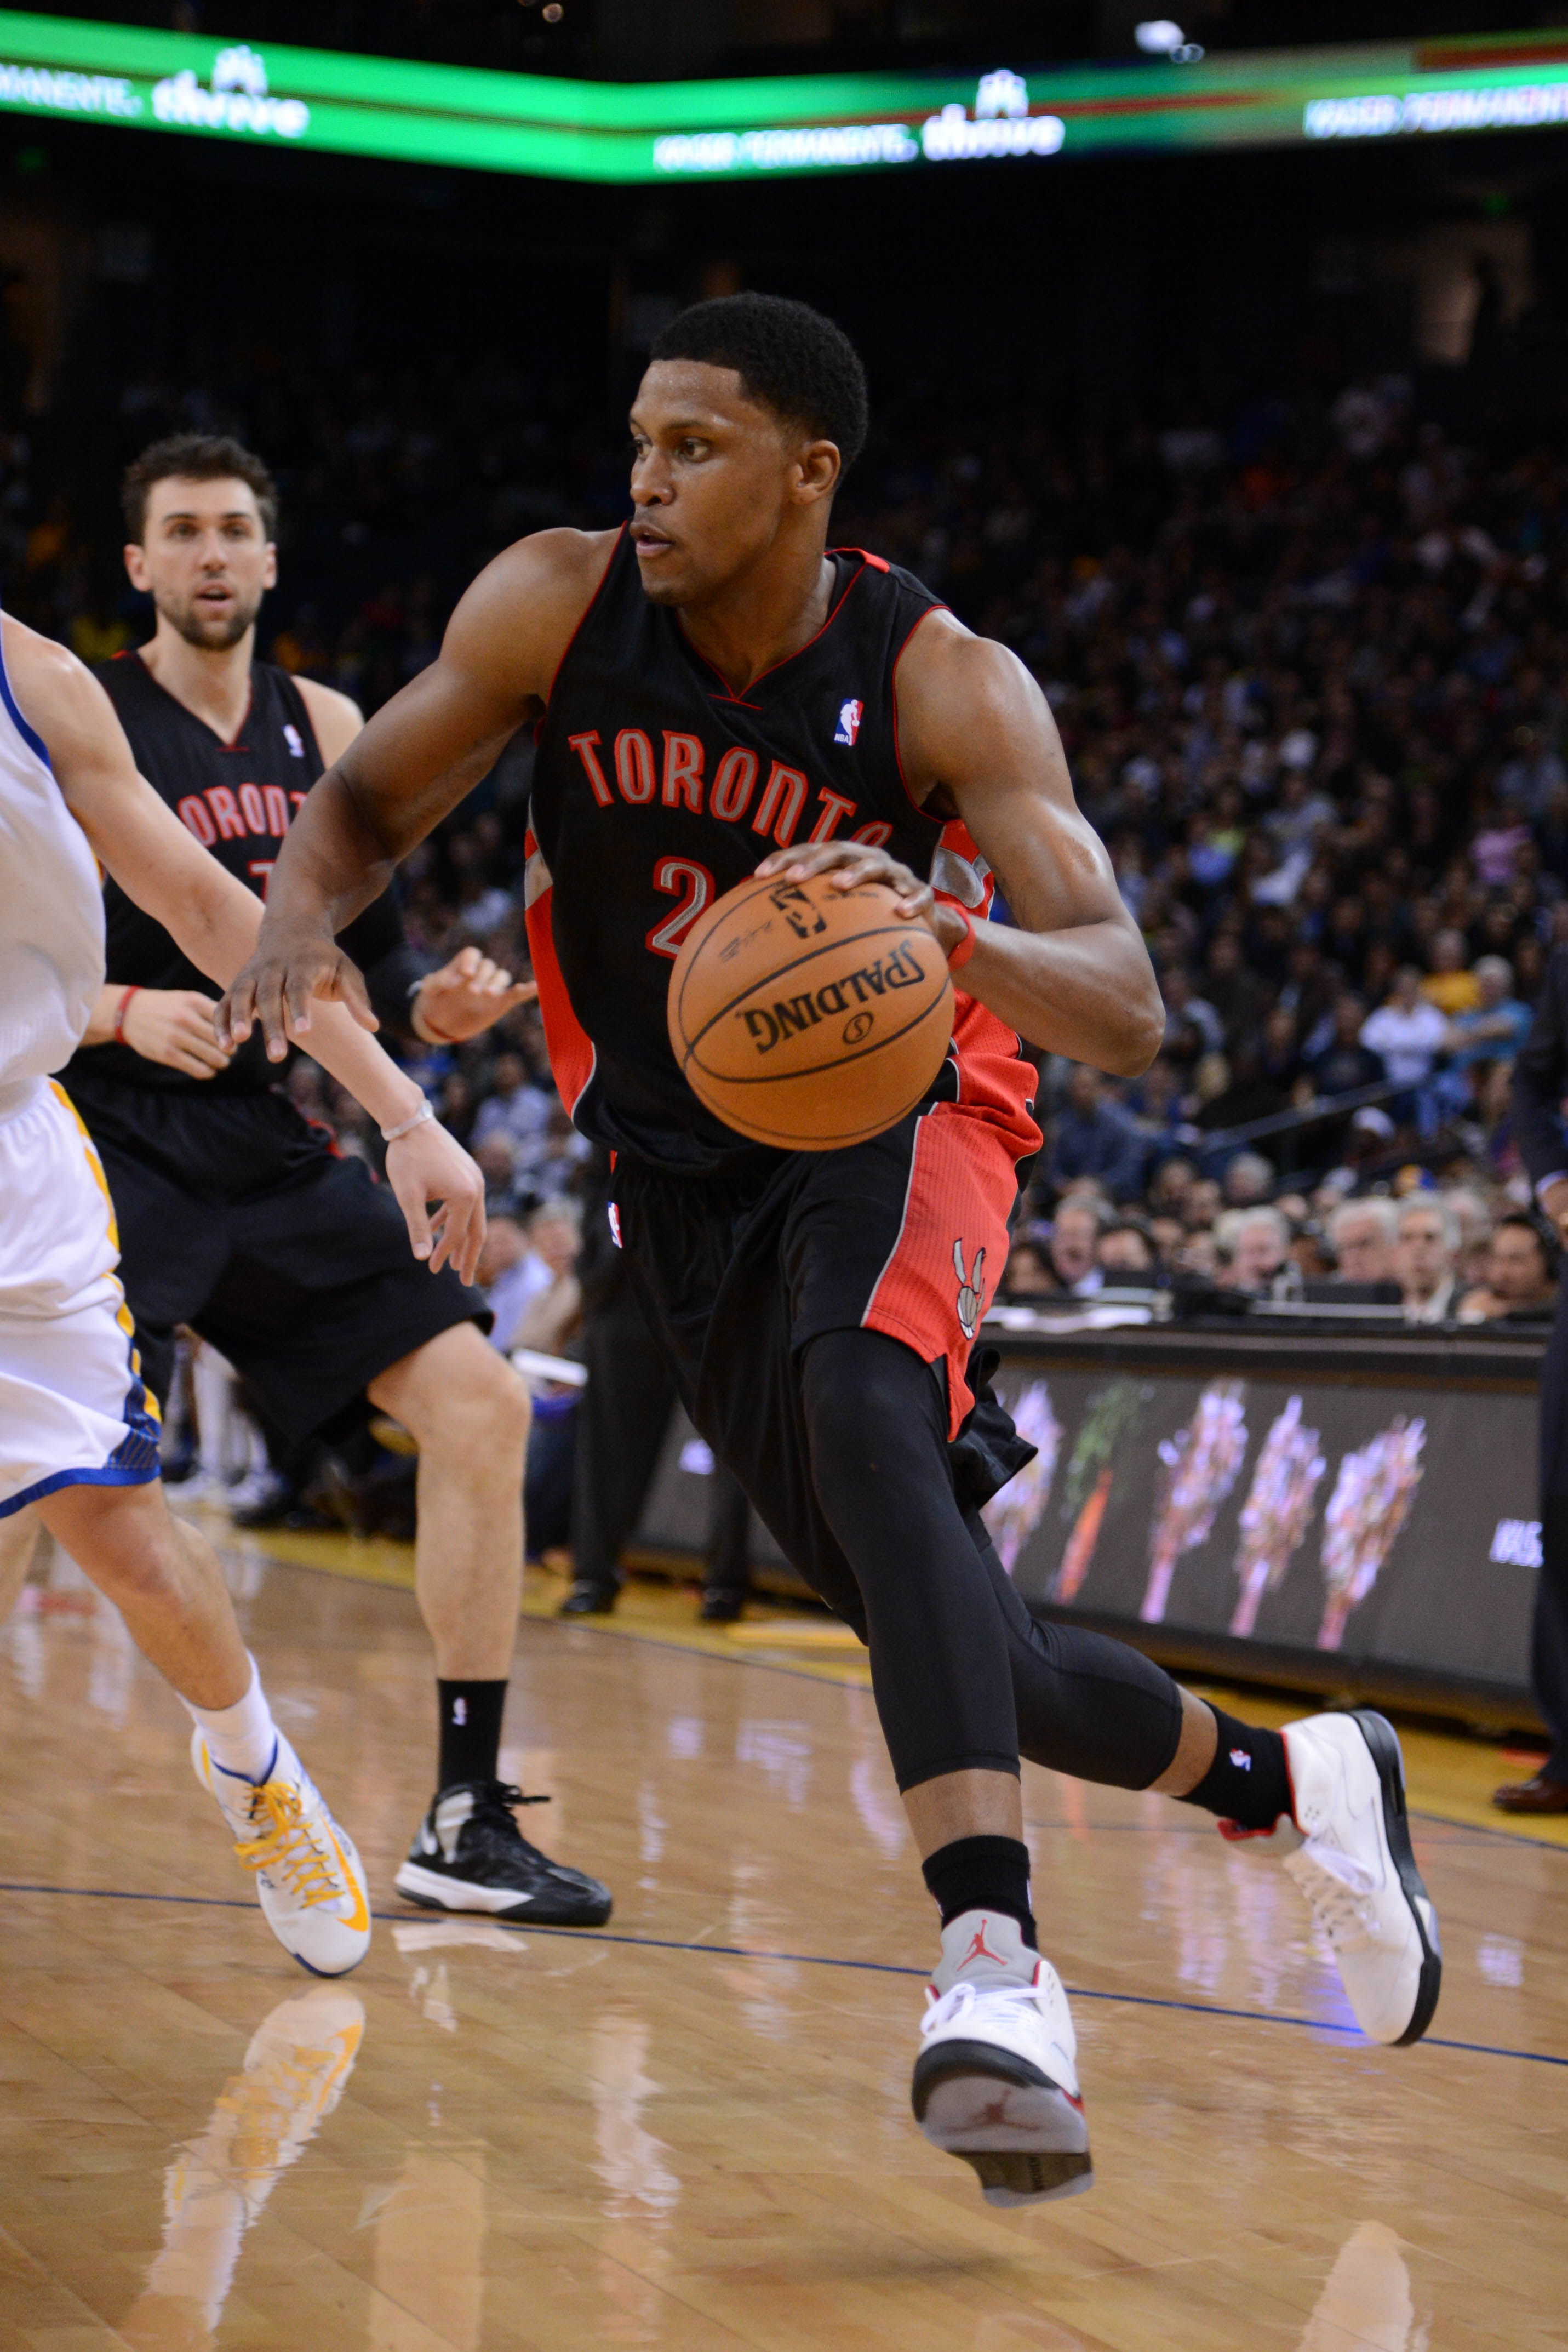 Rudy Gay has hit two game-winning baskets since joining Toronto in February. (USA Today Sports)